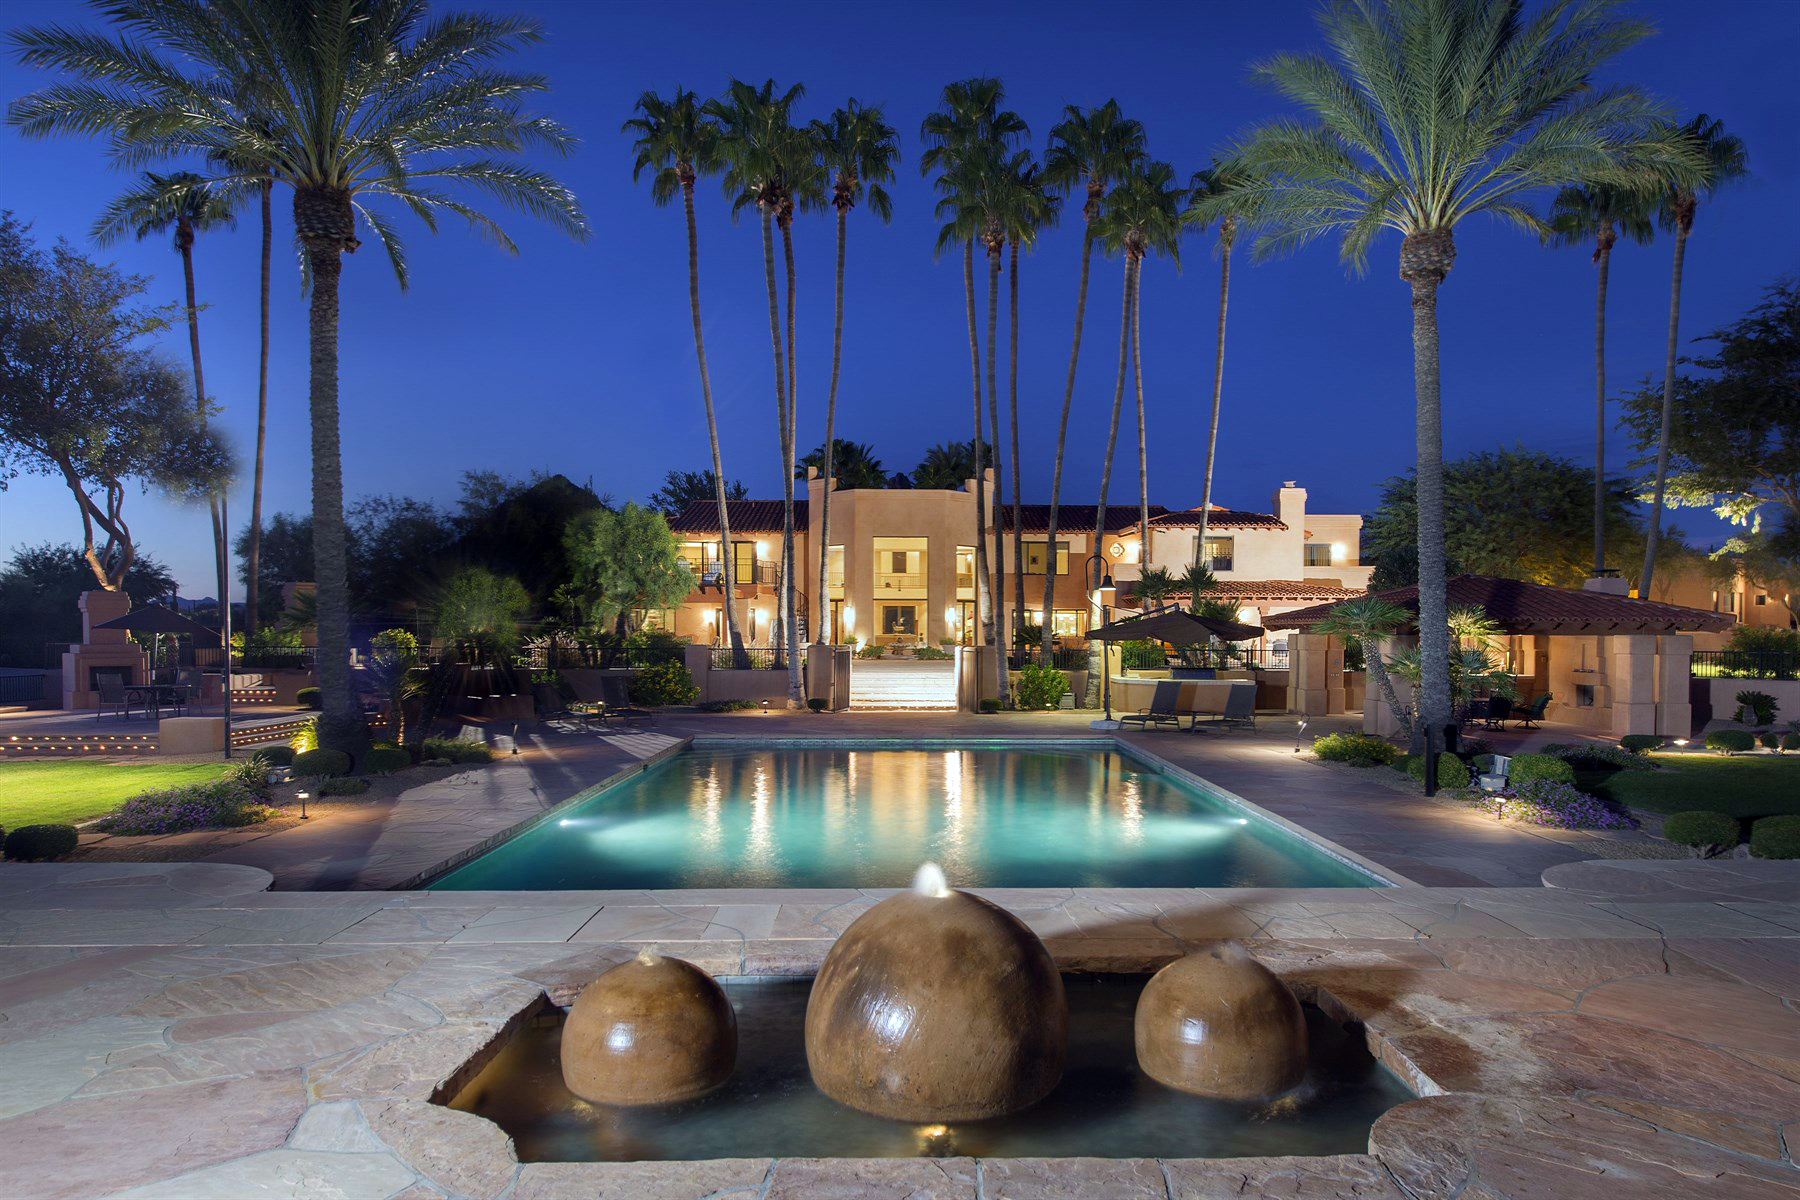 Single Family Home for Sale at Equestrian Luxury Living on 12 Glorious Acres Representing Oasis Ranch 10015 E Happy Valley Rd Scottsdale, Arizona 85255 United States